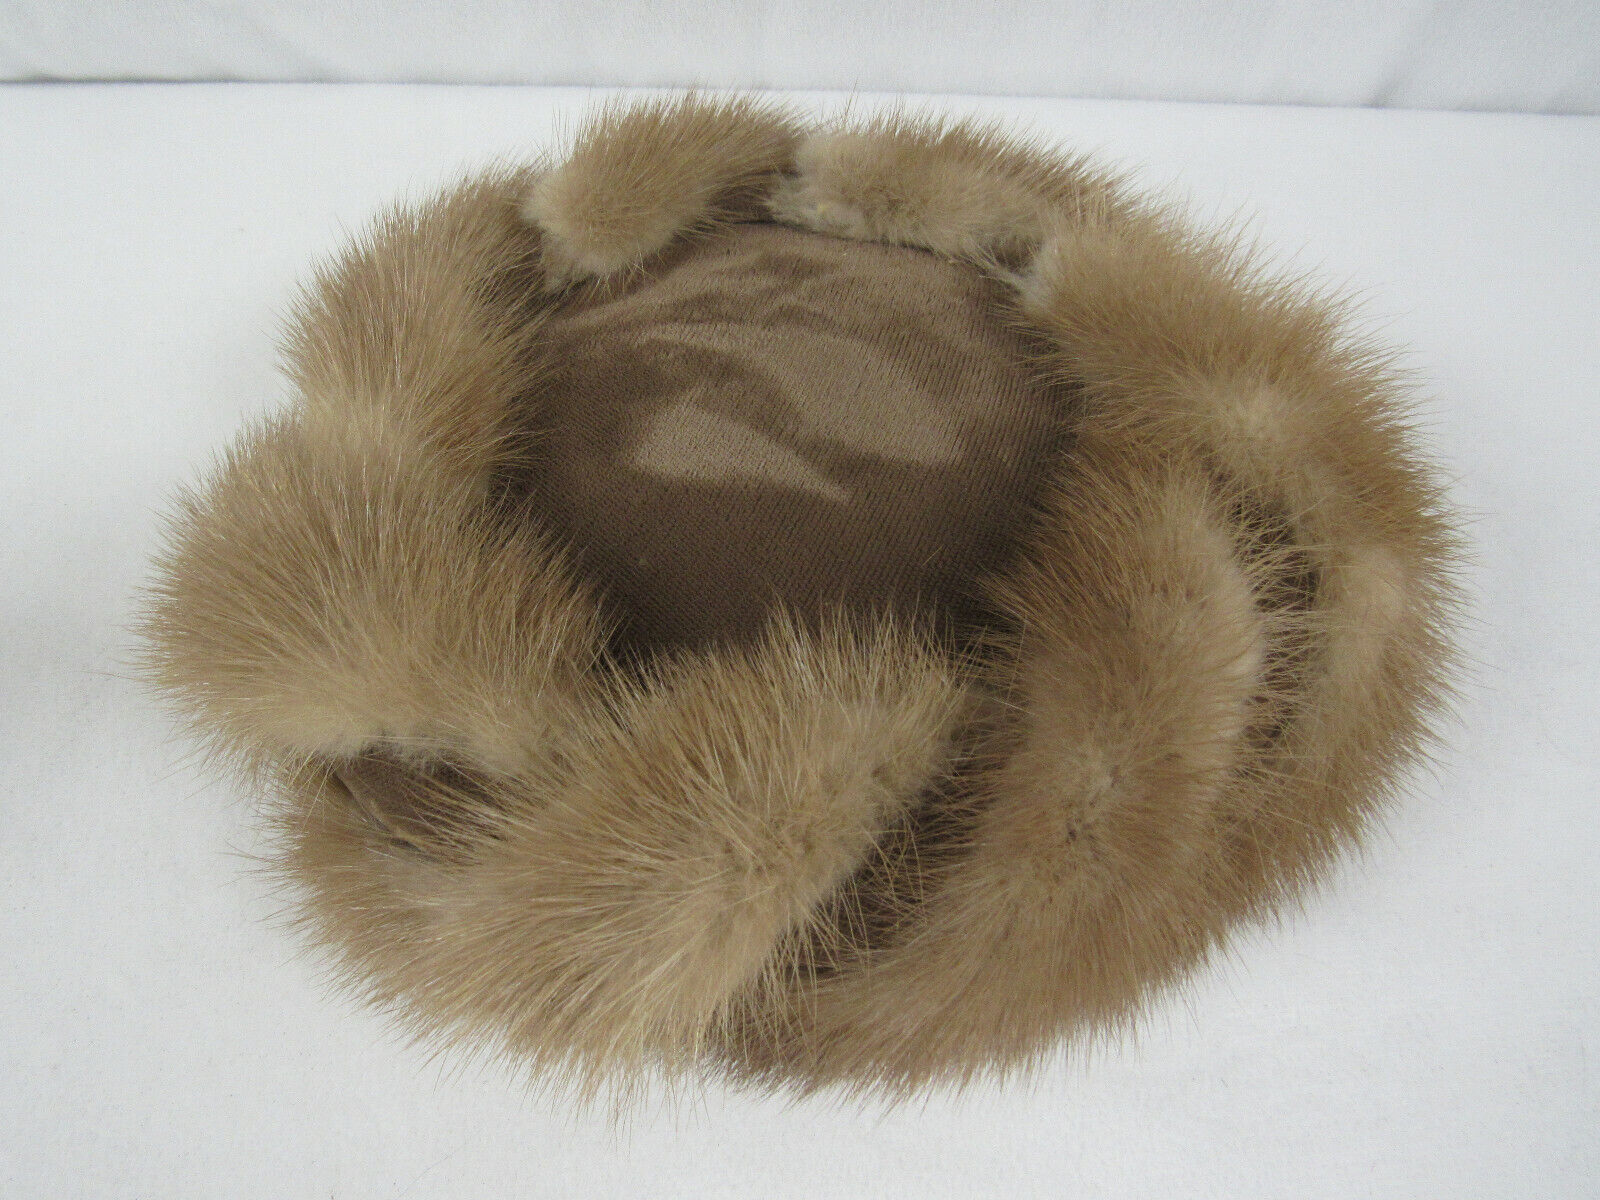 Vintage Mink Fur Hat by Lord & Taylor Sheppard of New York Hat